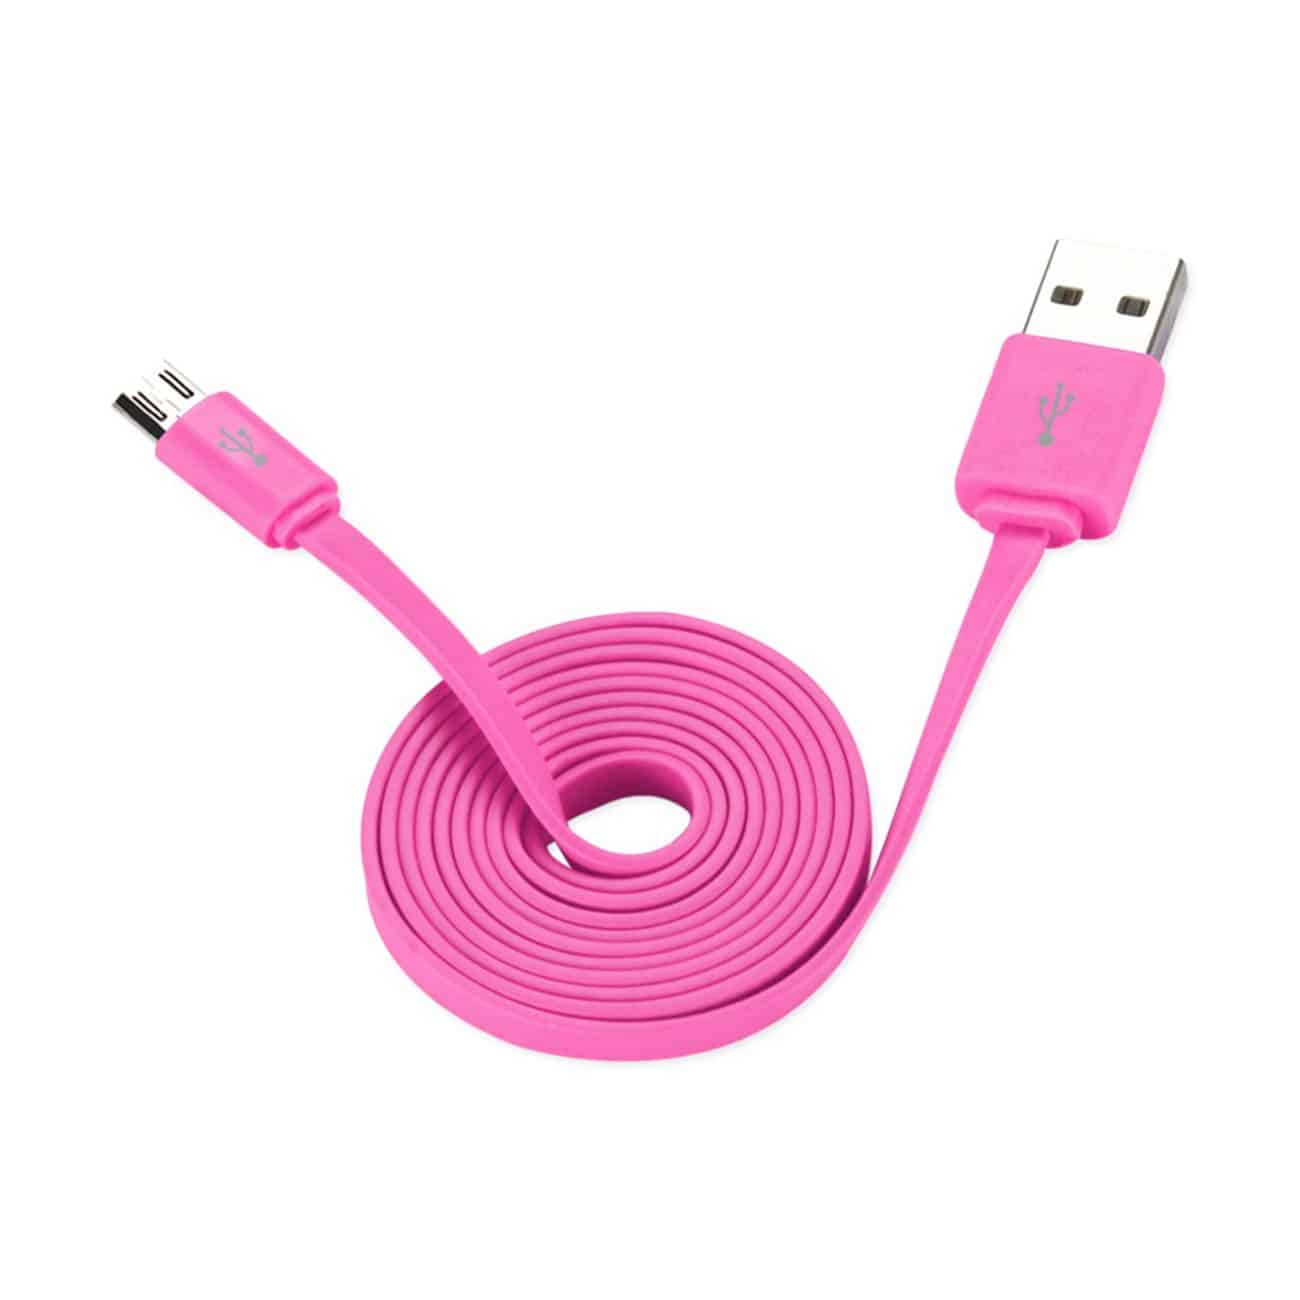 FLAT MICRO USB DATA CABLE 3.2FT IN PINK